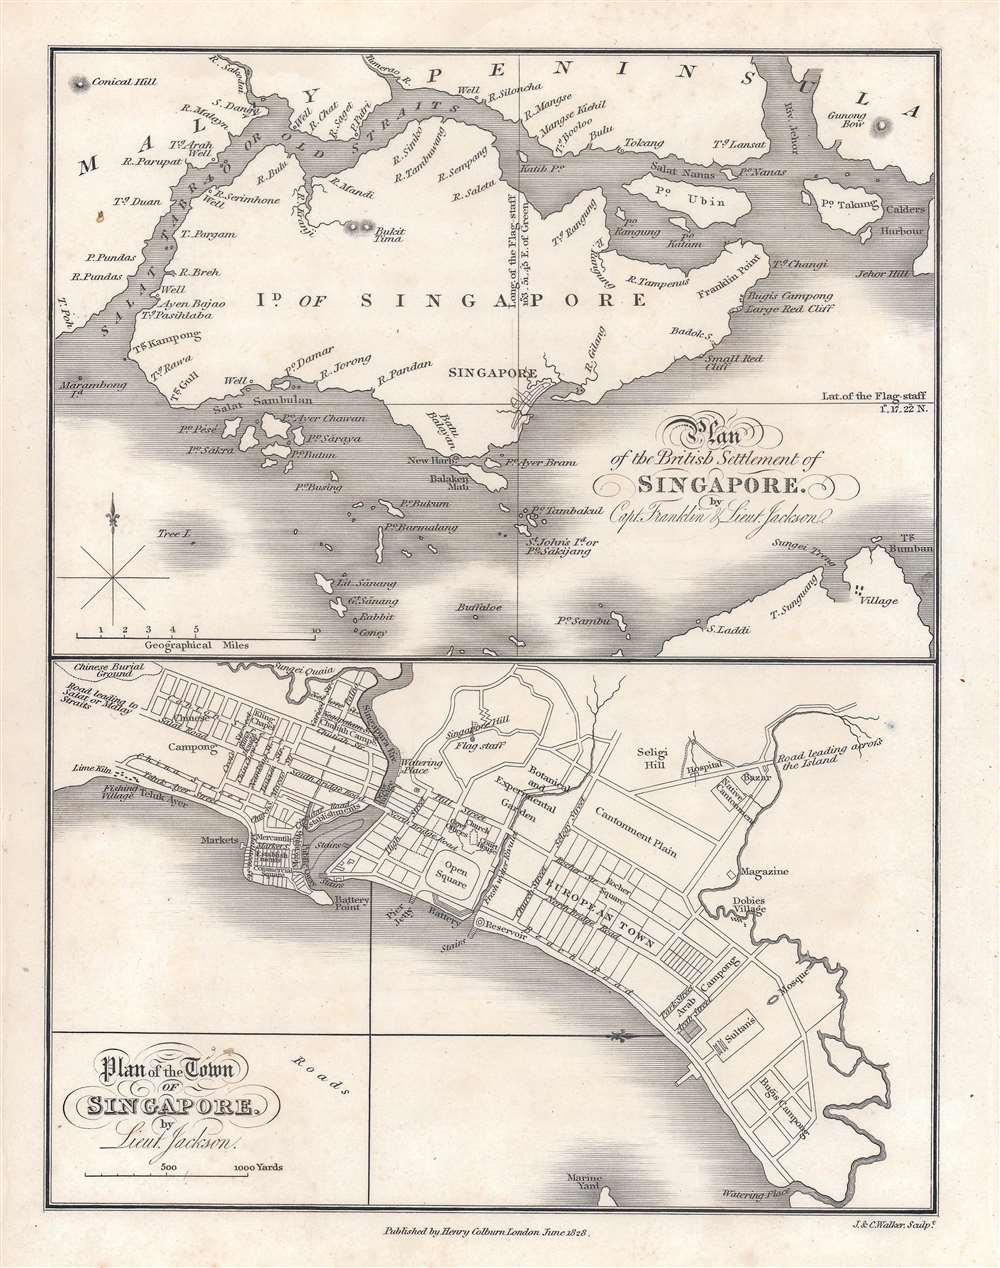 Plan of the Town of Singapore by Lieut. Jackson.  / Plan of the British Settlement of Singapore by Capt. Franklin and Lieut. Jackson. - Main View